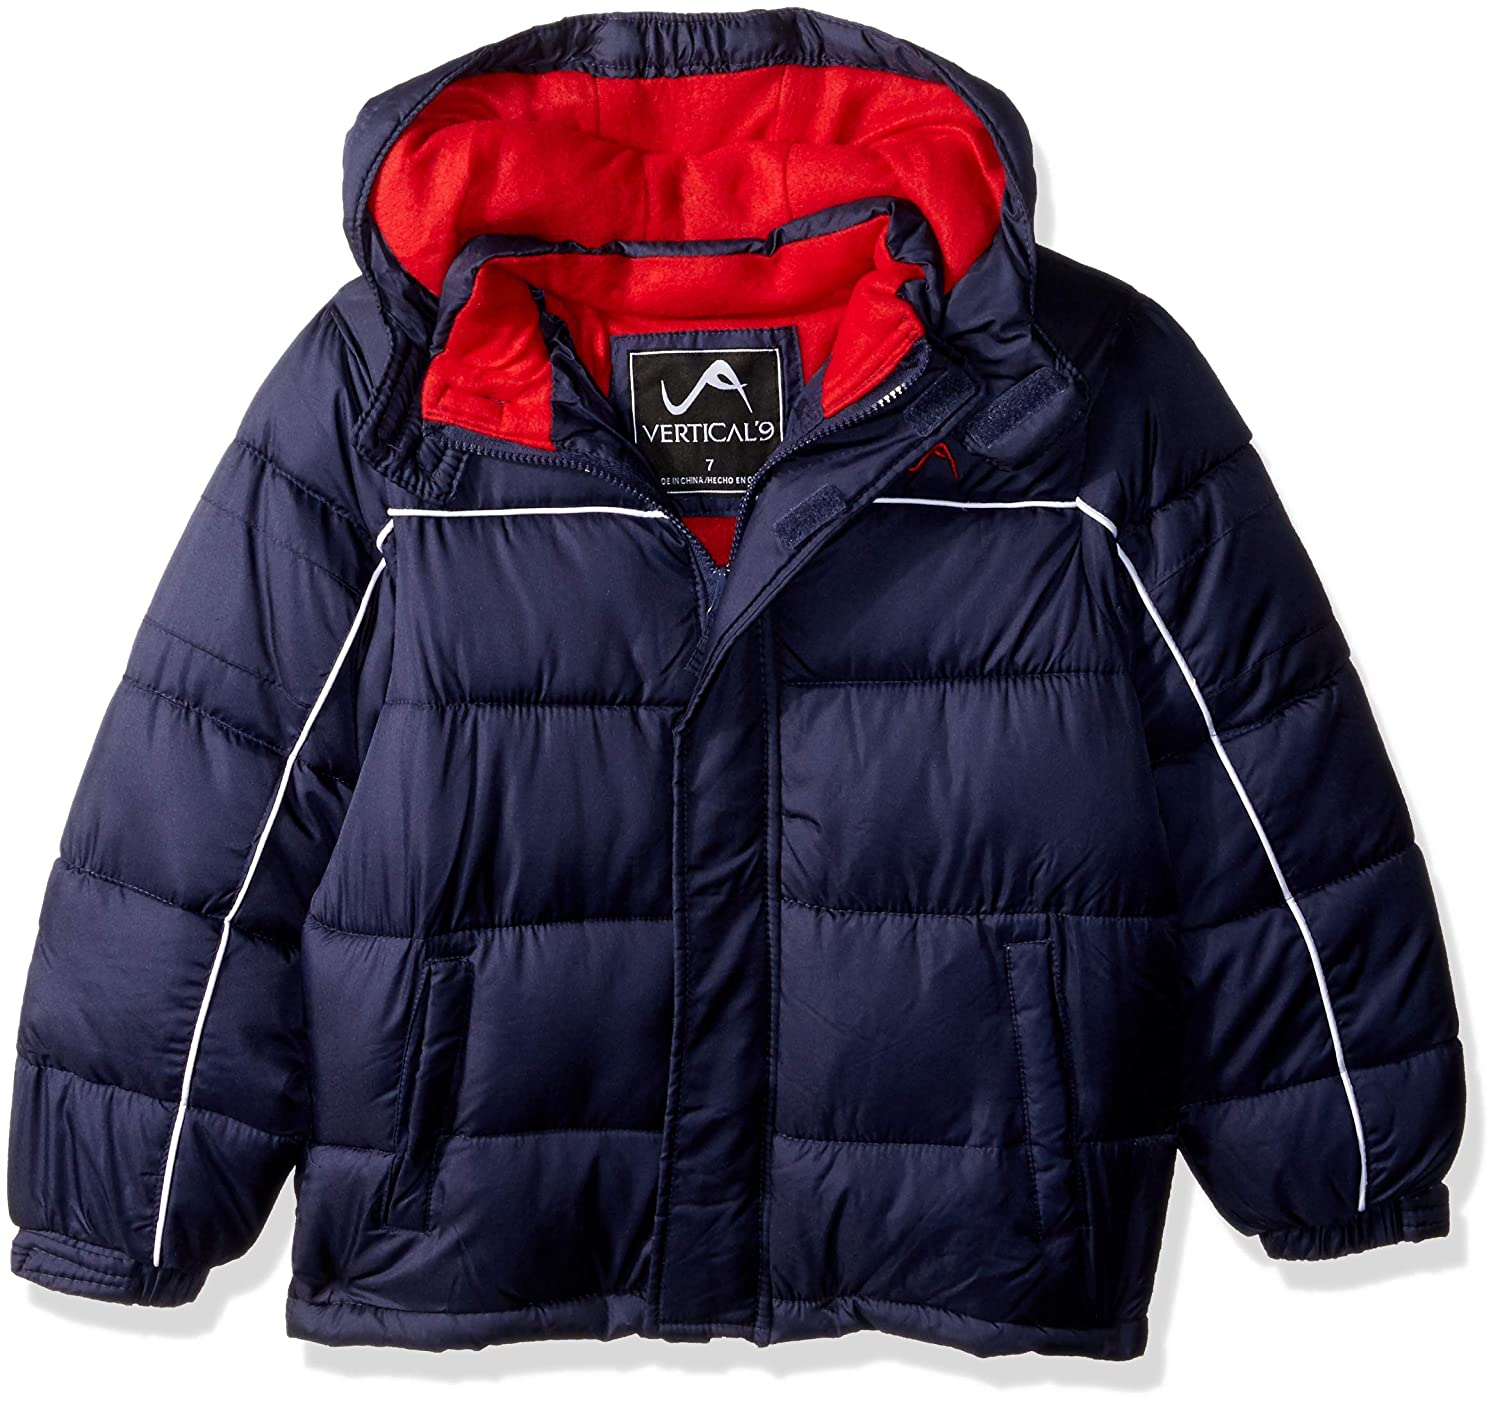 Vertical '9 Boys' Lines Bubble Jacket